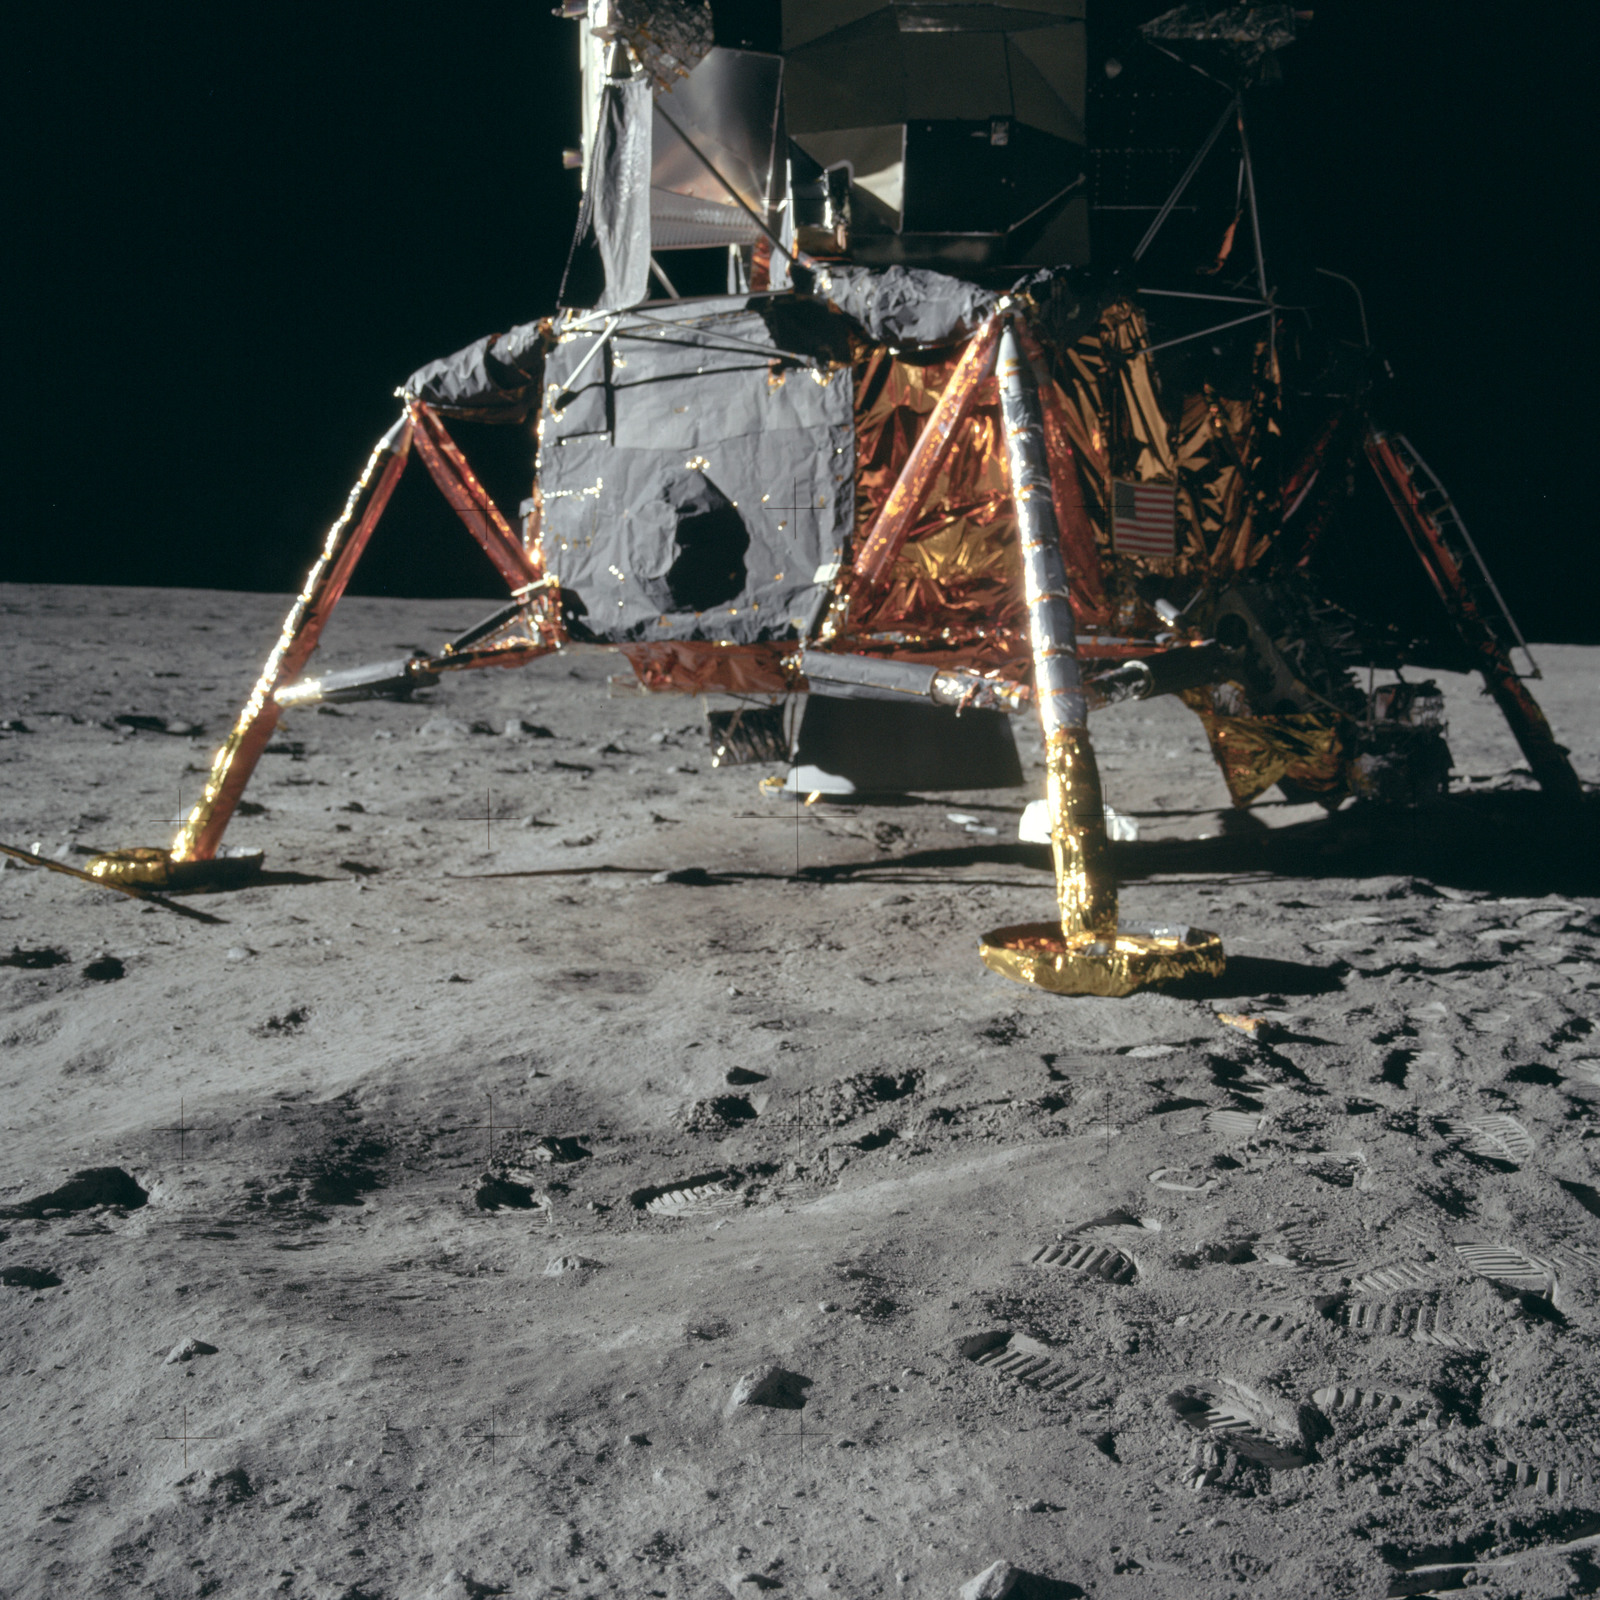 AS11-40-5915 - Apollo 11 - Apollo 11 Mission image -  Lunar surface and Lunar Module